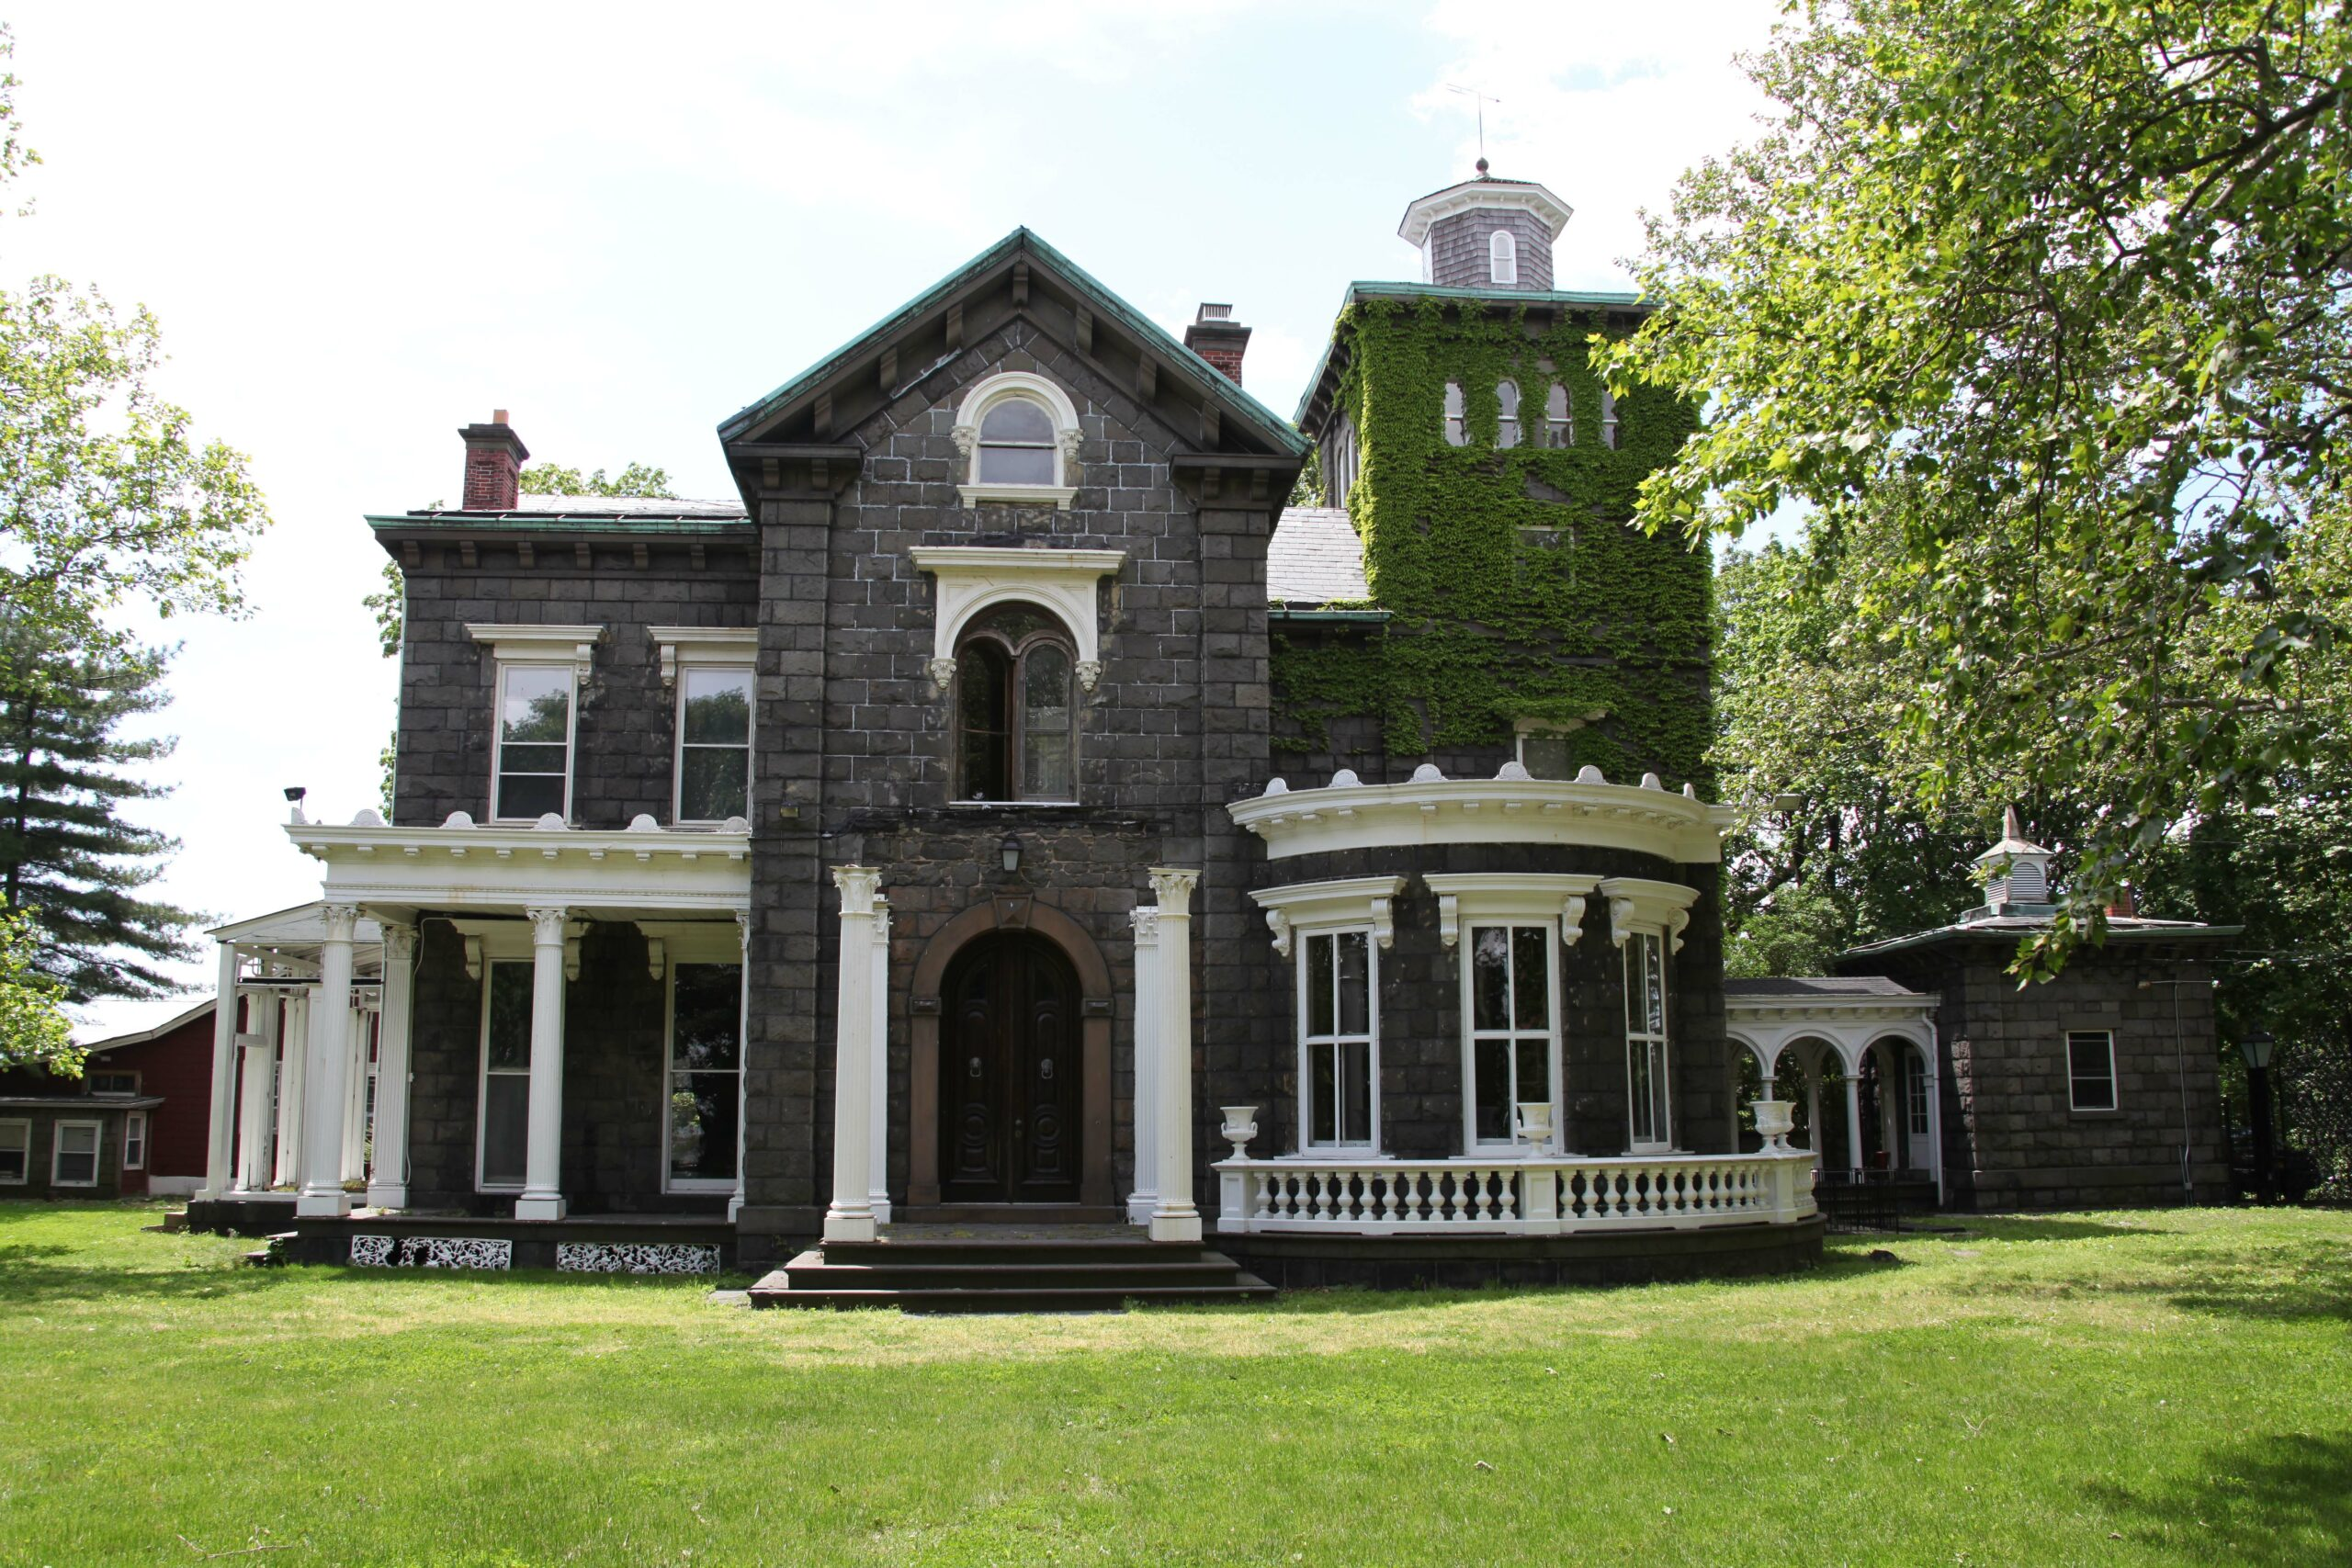 Exterior of the mansion